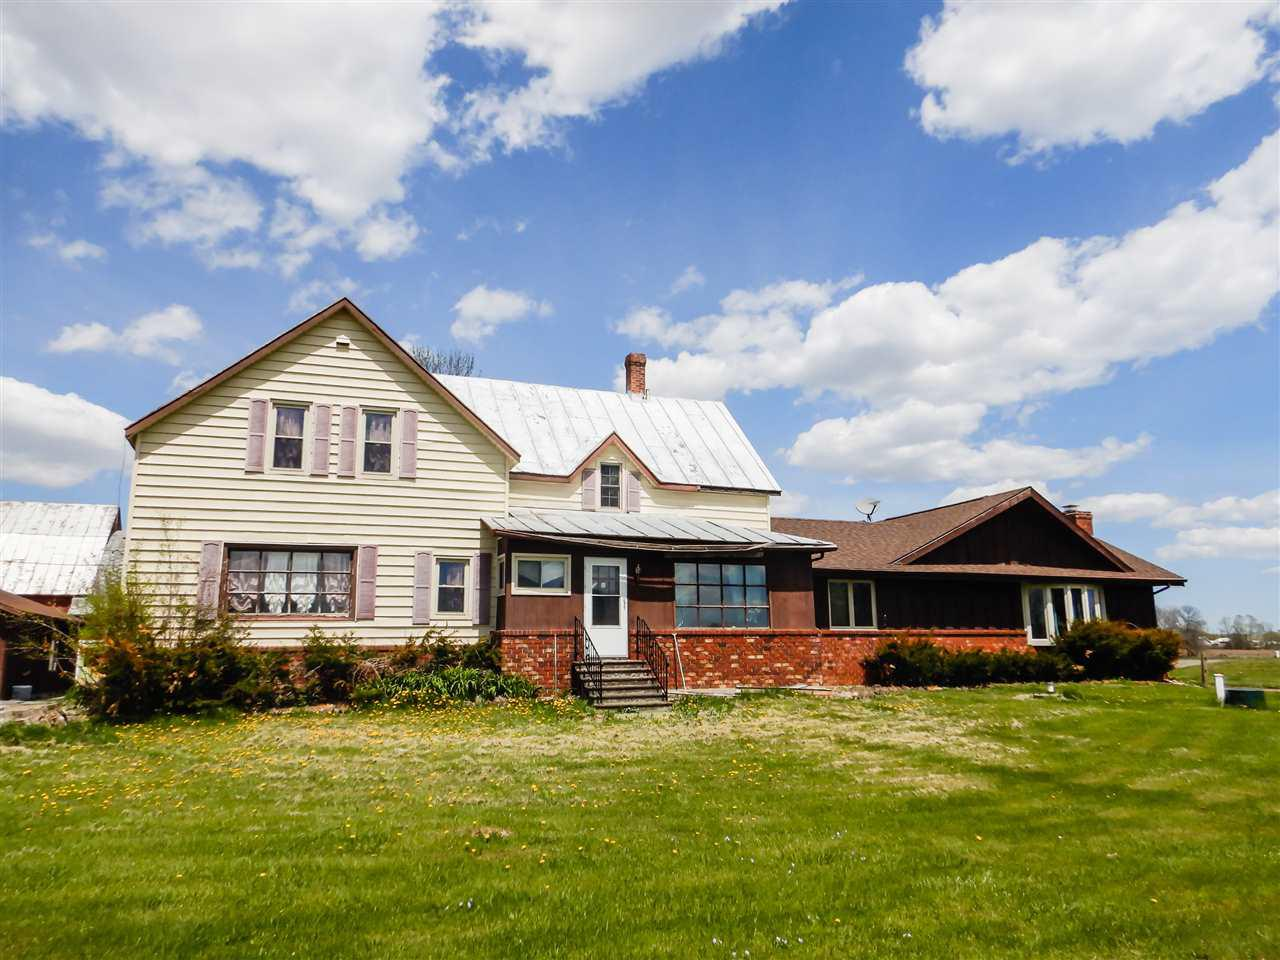 Country Living at it's finest! Plenty of room to run on over 38+ acres of mostly farmland with some wooded areas. Start a hobby farm or raise horses. This property is set up for many uses. 9 outbuildings including 3 barns for all of your storage and farming needs. This 2 story huge home offers 6 bedrooms 4 in upper,2 on main level,3 full baths,2 living rooms and large kitchen/dinning room. Vaulted ceiling living room area with brick wood burring fire place leads to indoor heated (inground)year round swimming pool. Basement finished for rec room. There is so many possibilities! Come check out!